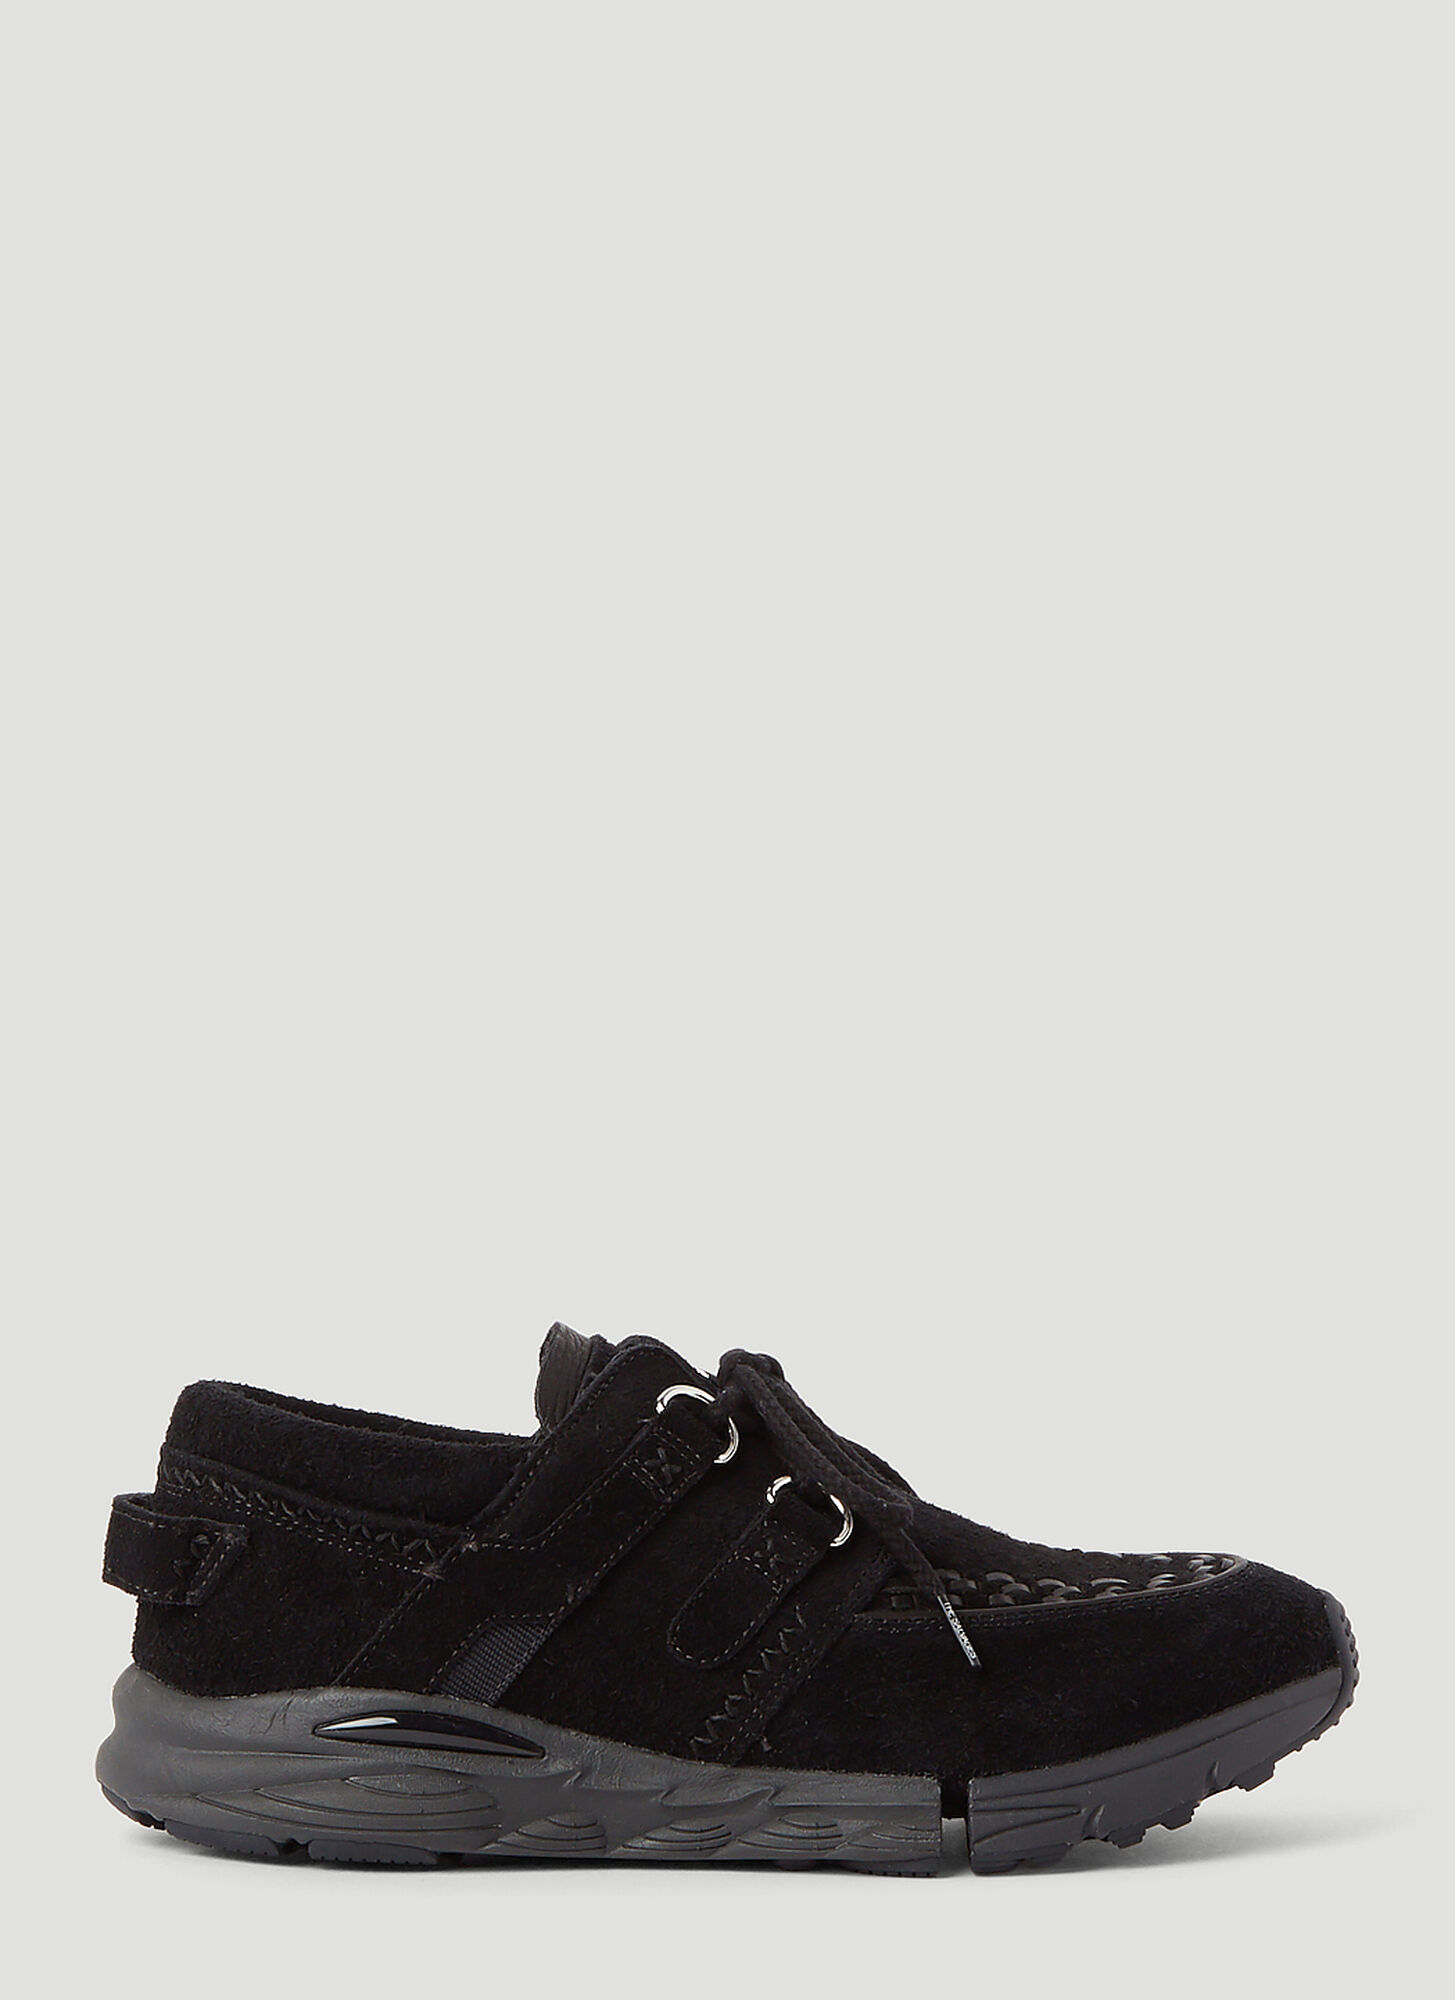 The Salvages Banshee Sneakers in Black